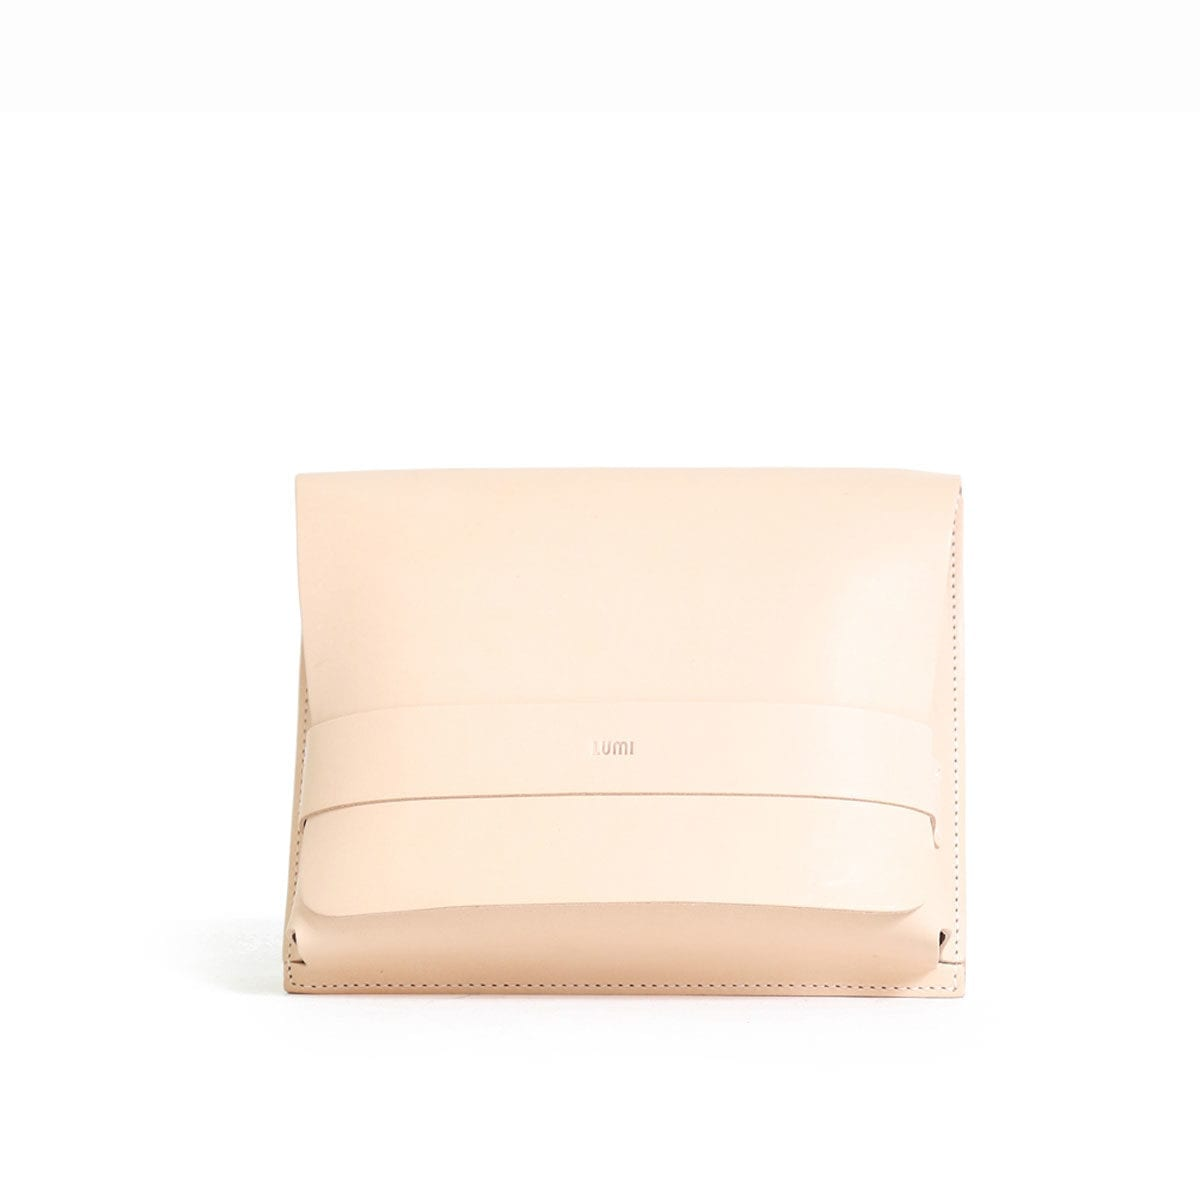 LUMI Large Case Meeting Pocket is created using natural vegetable tanned cow leather.